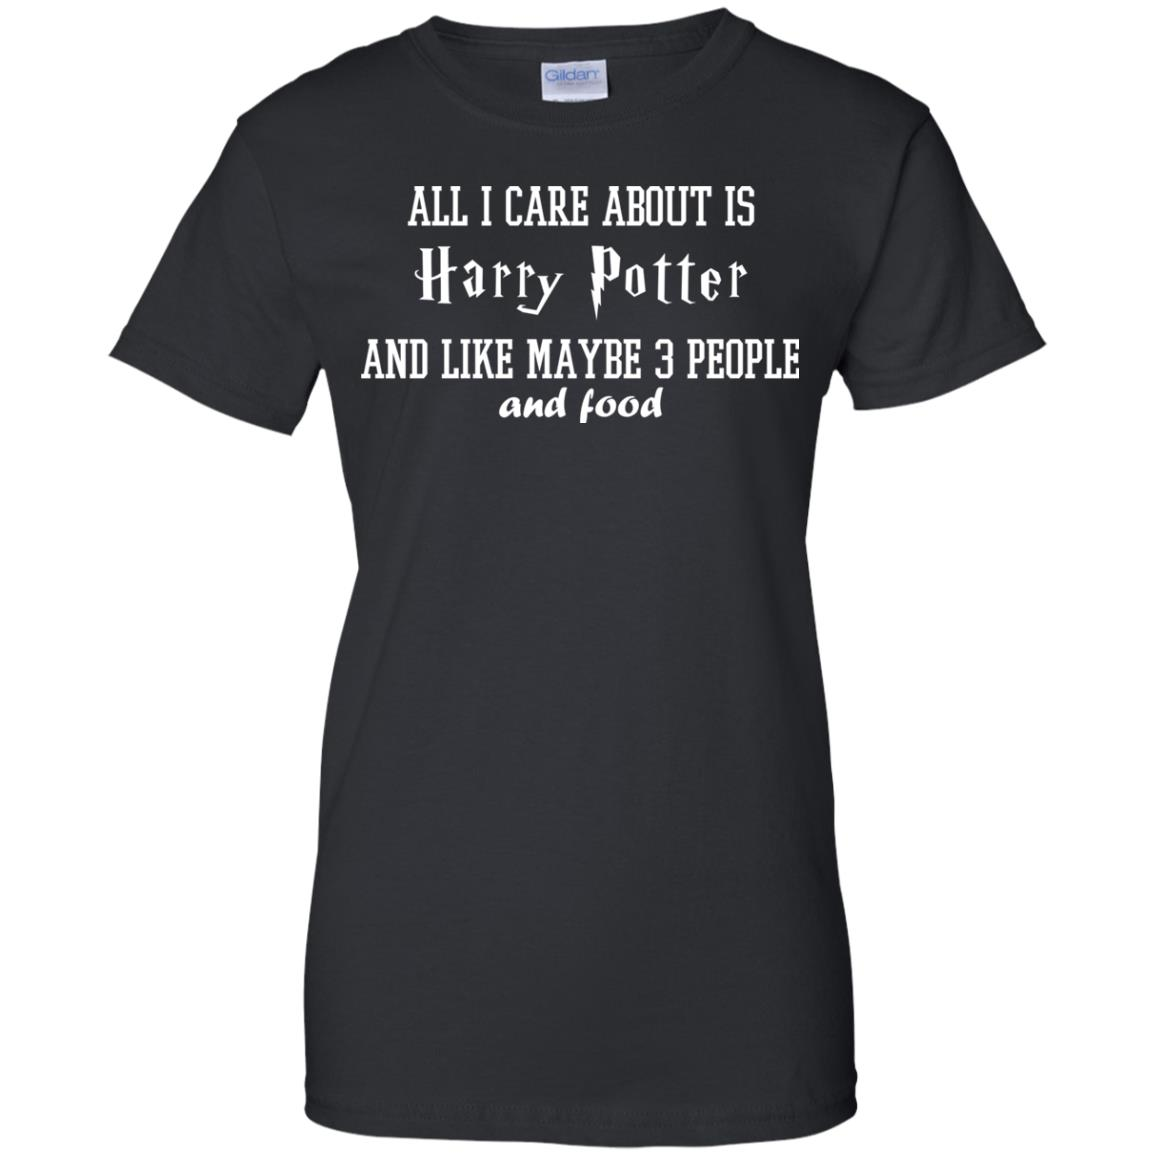 image 285px All I care about is Harry Potter and maybe 3 people and food t shirt